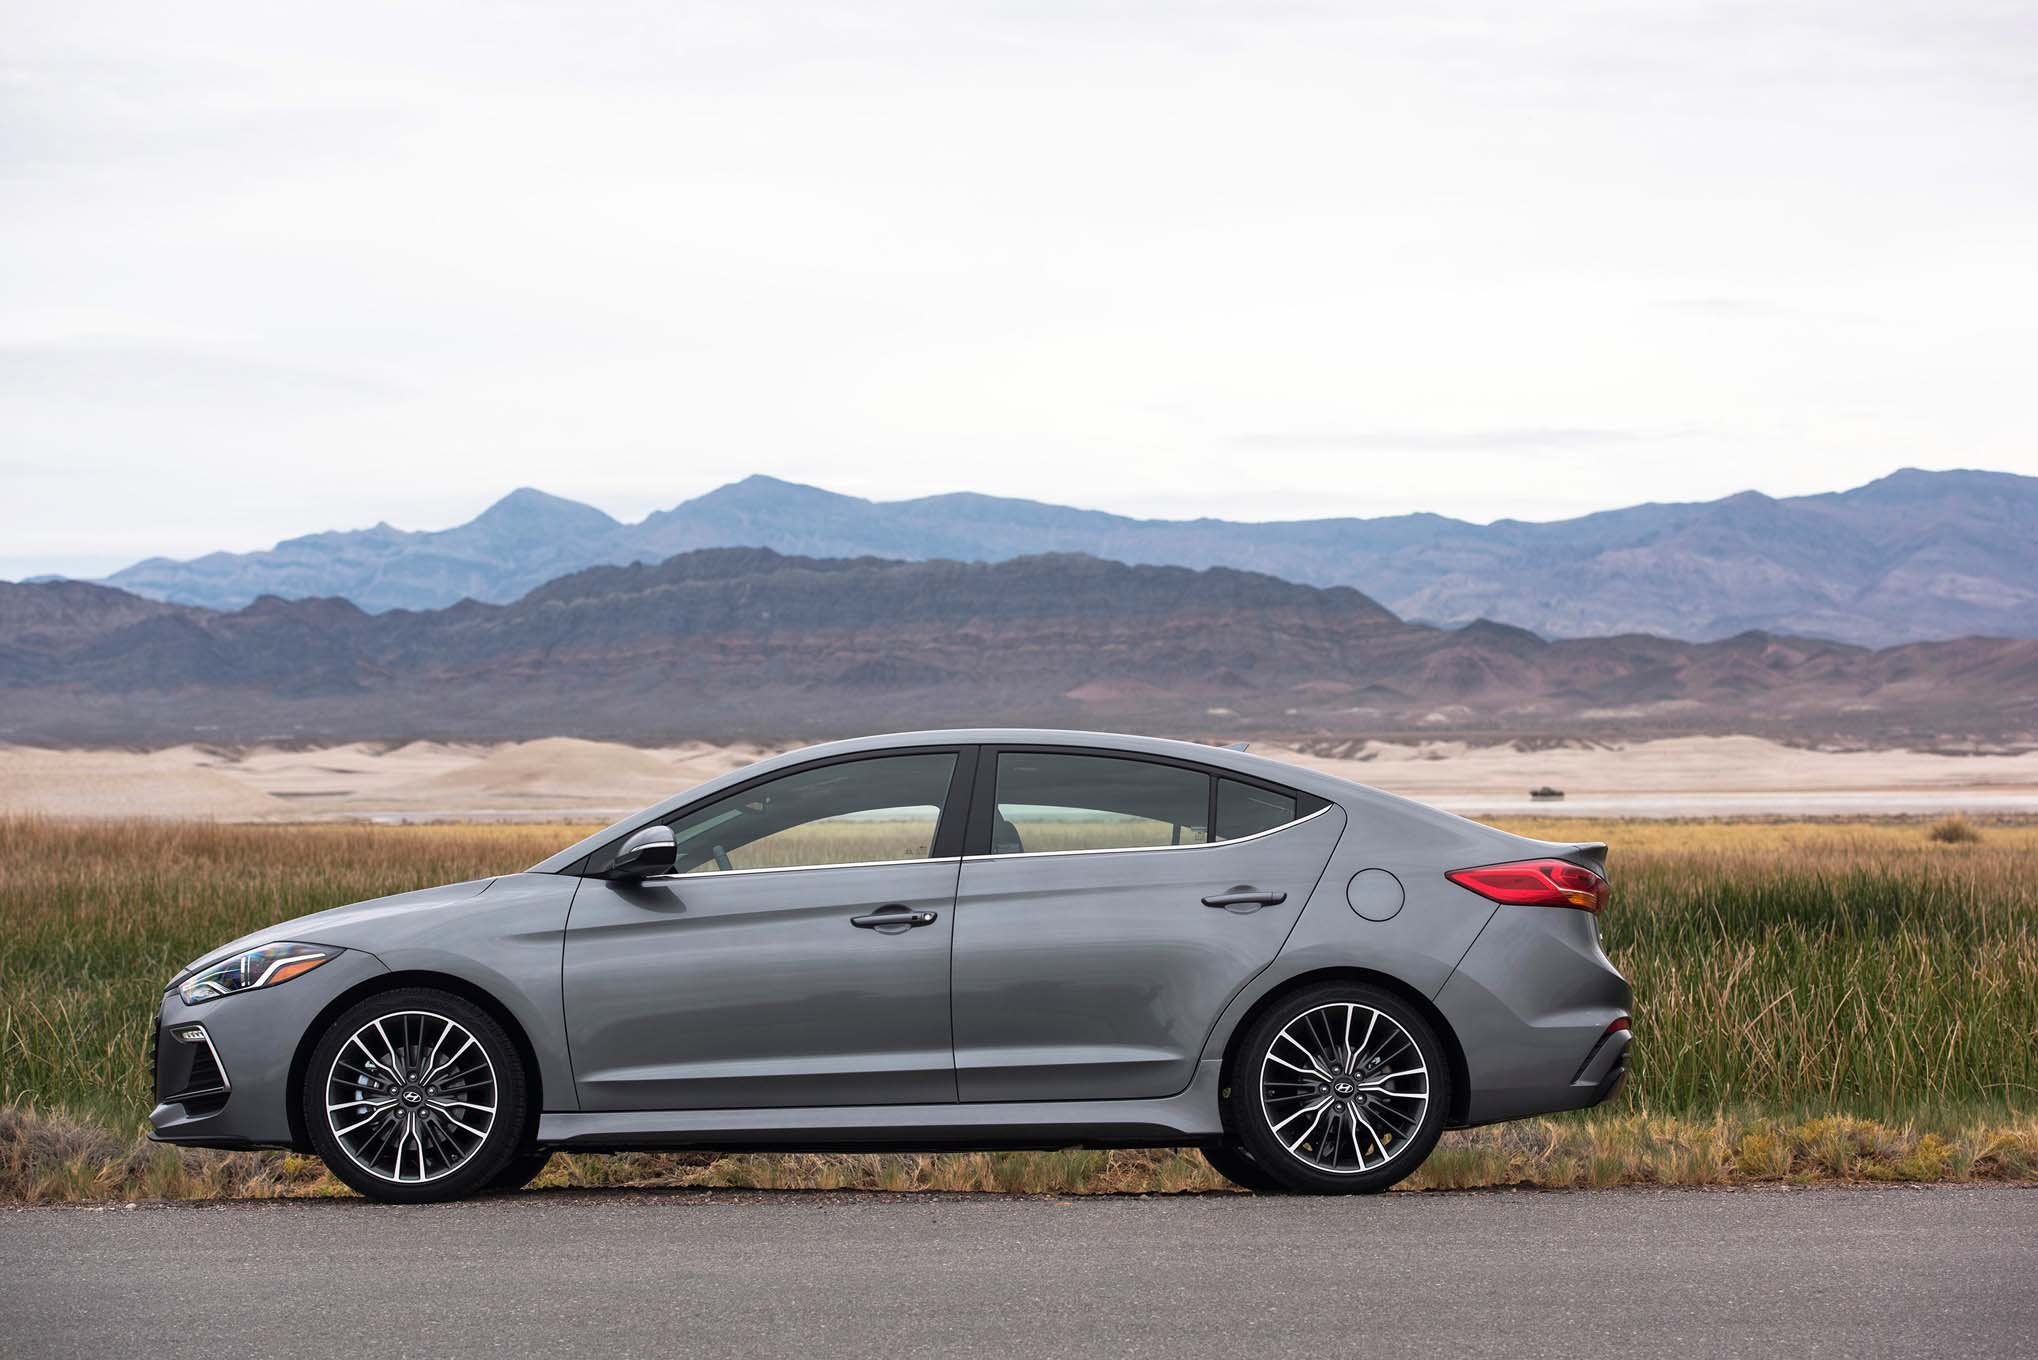 2017 hyundai elantra debuts in l a with new design new engines. Black Bedroom Furniture Sets. Home Design Ideas